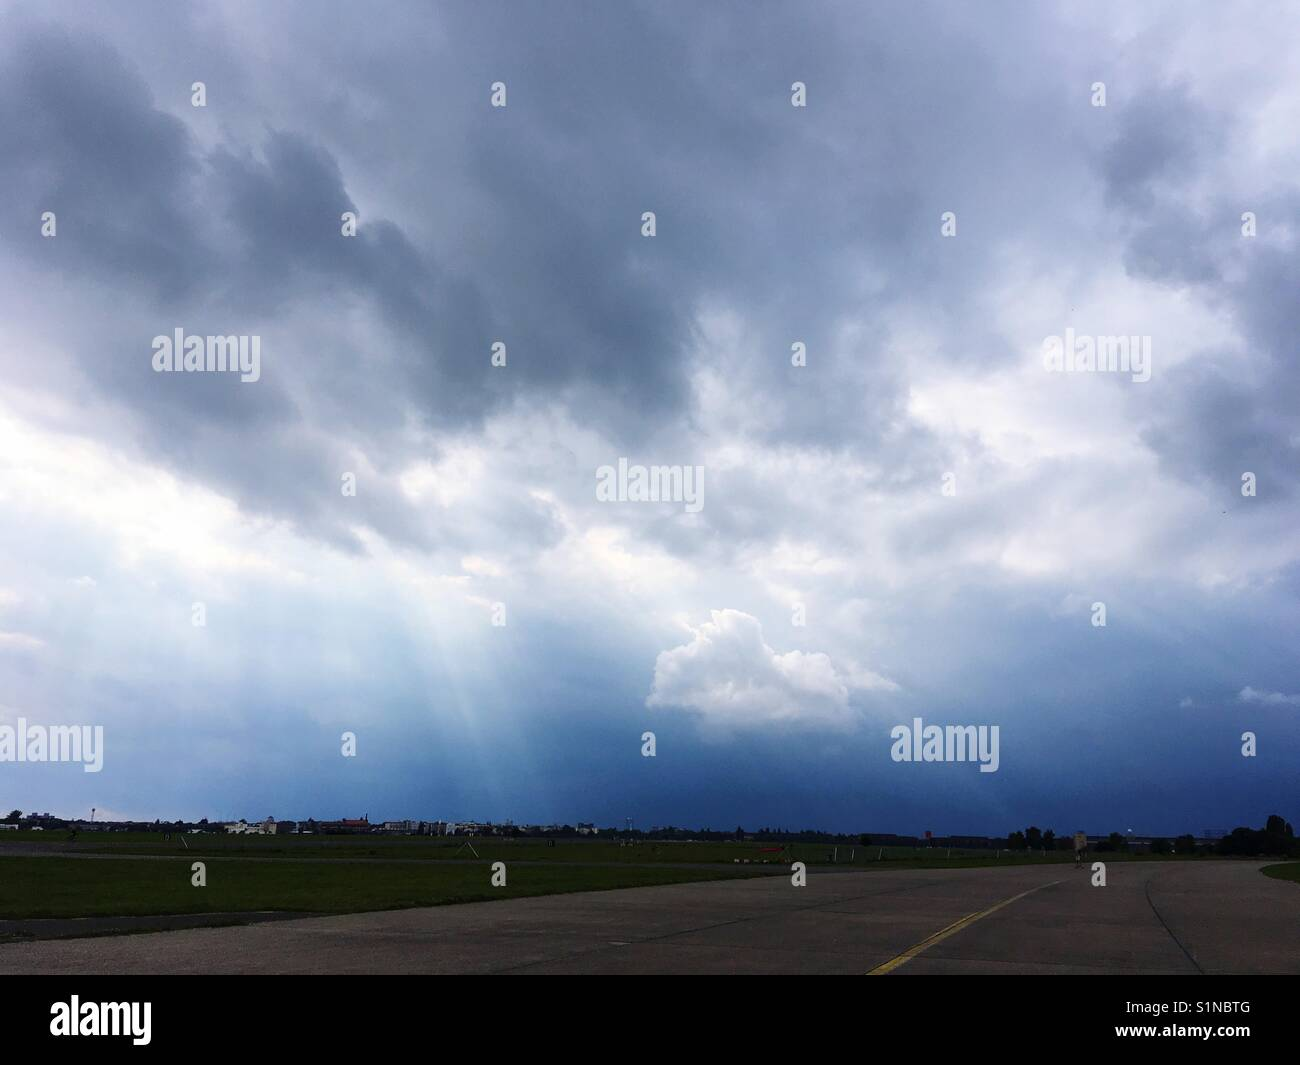 Clouds of a Rain Front approaching - Stock Image